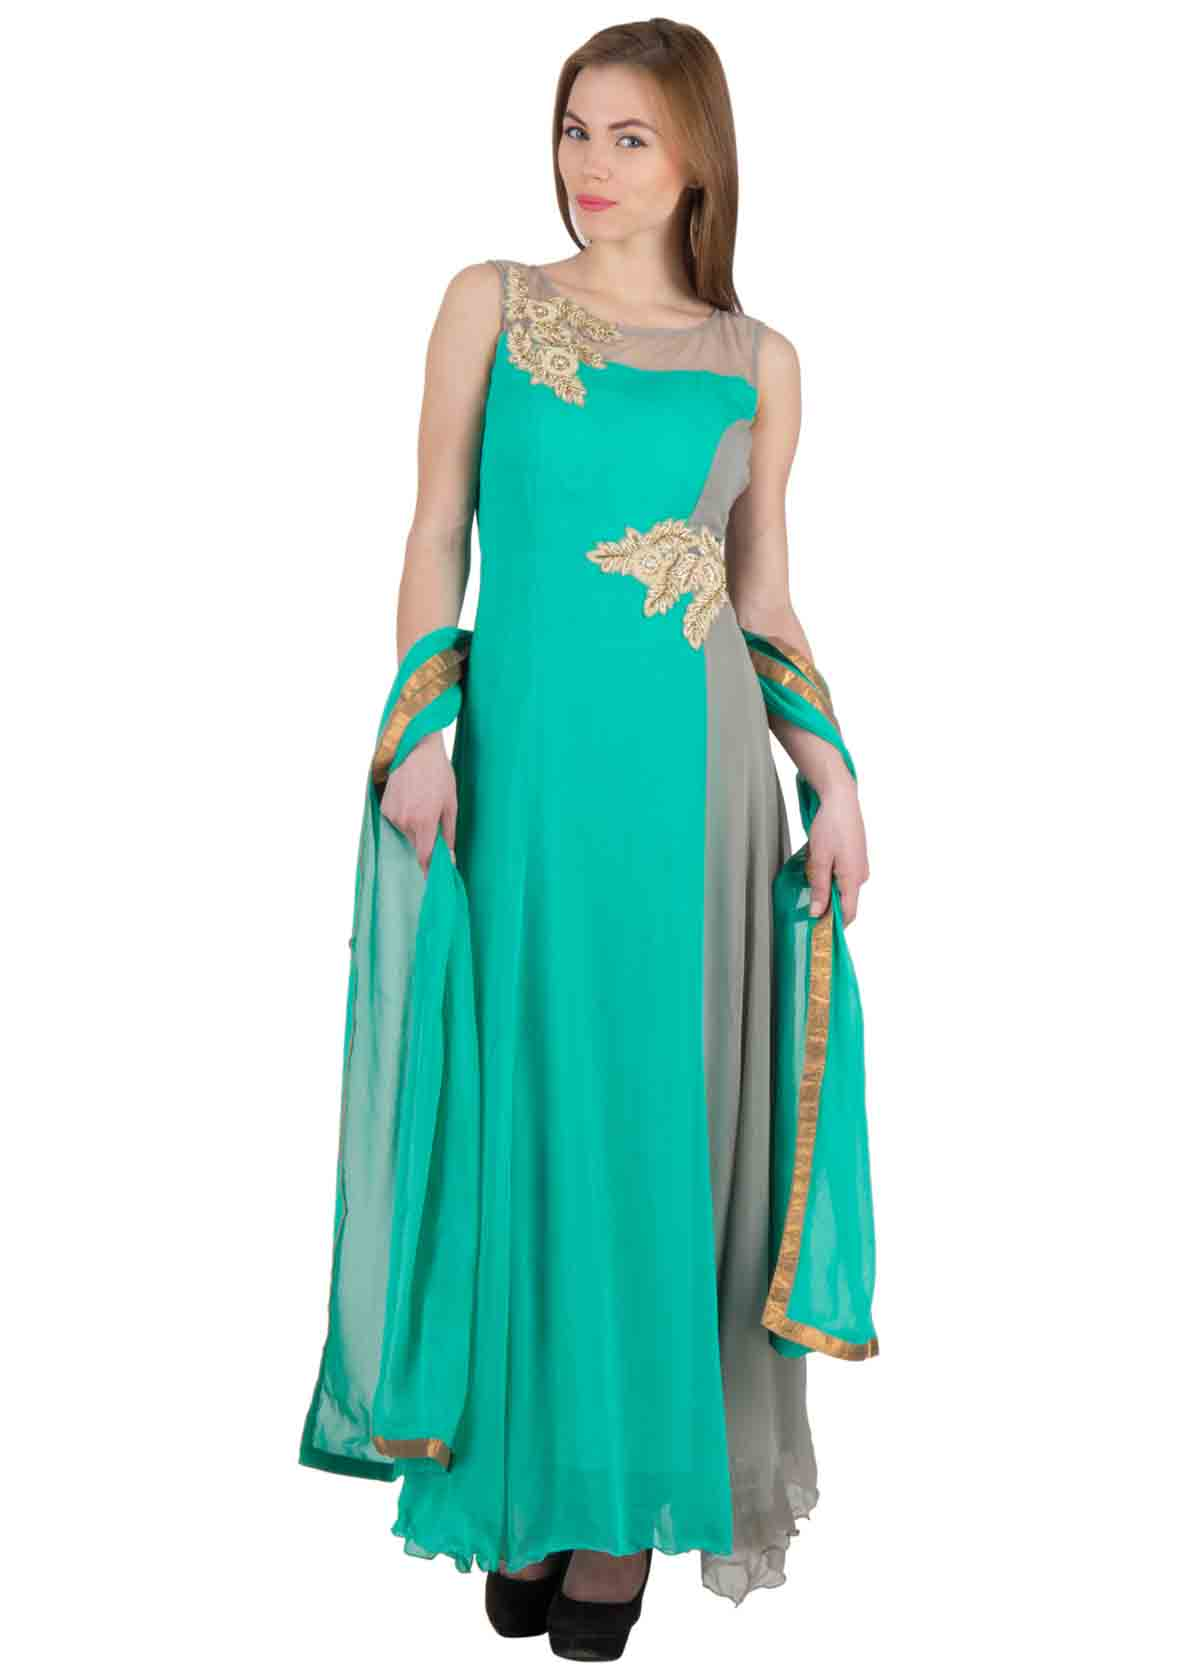 67d878aef5 triumph. Loading zoom. Roll over image to zoom in. Stylish 3 pc floor  length anarkali style ...